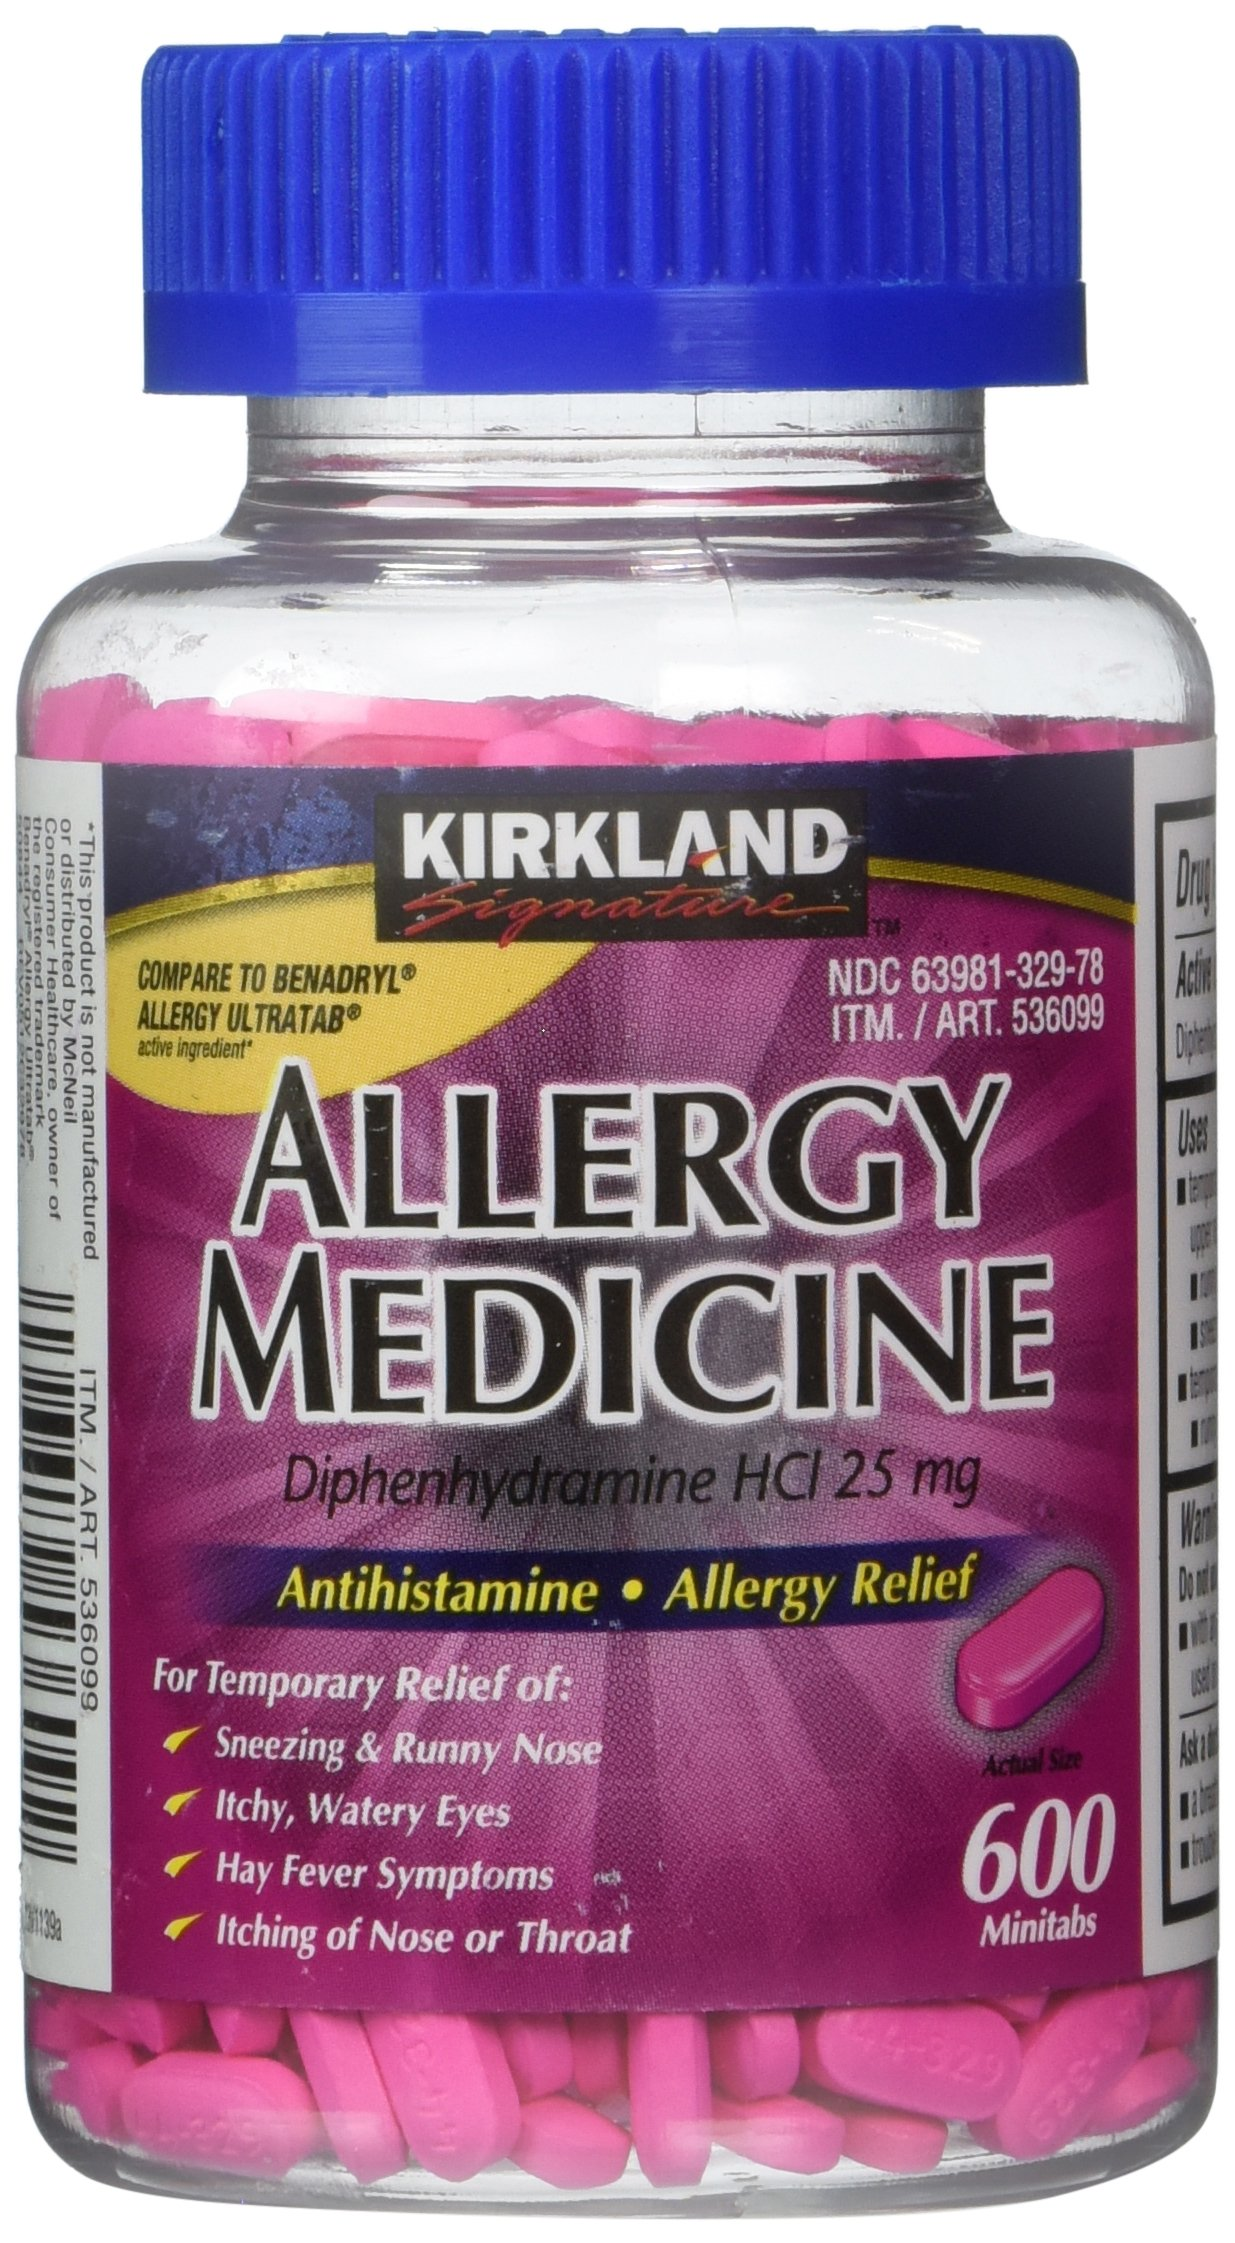 Diphenhydramine HCI 25 Mg - Kirkland Brand - Allergy Medicine and AntihistamineCompare to Active Ingredient of Benadryl Allergy Generic